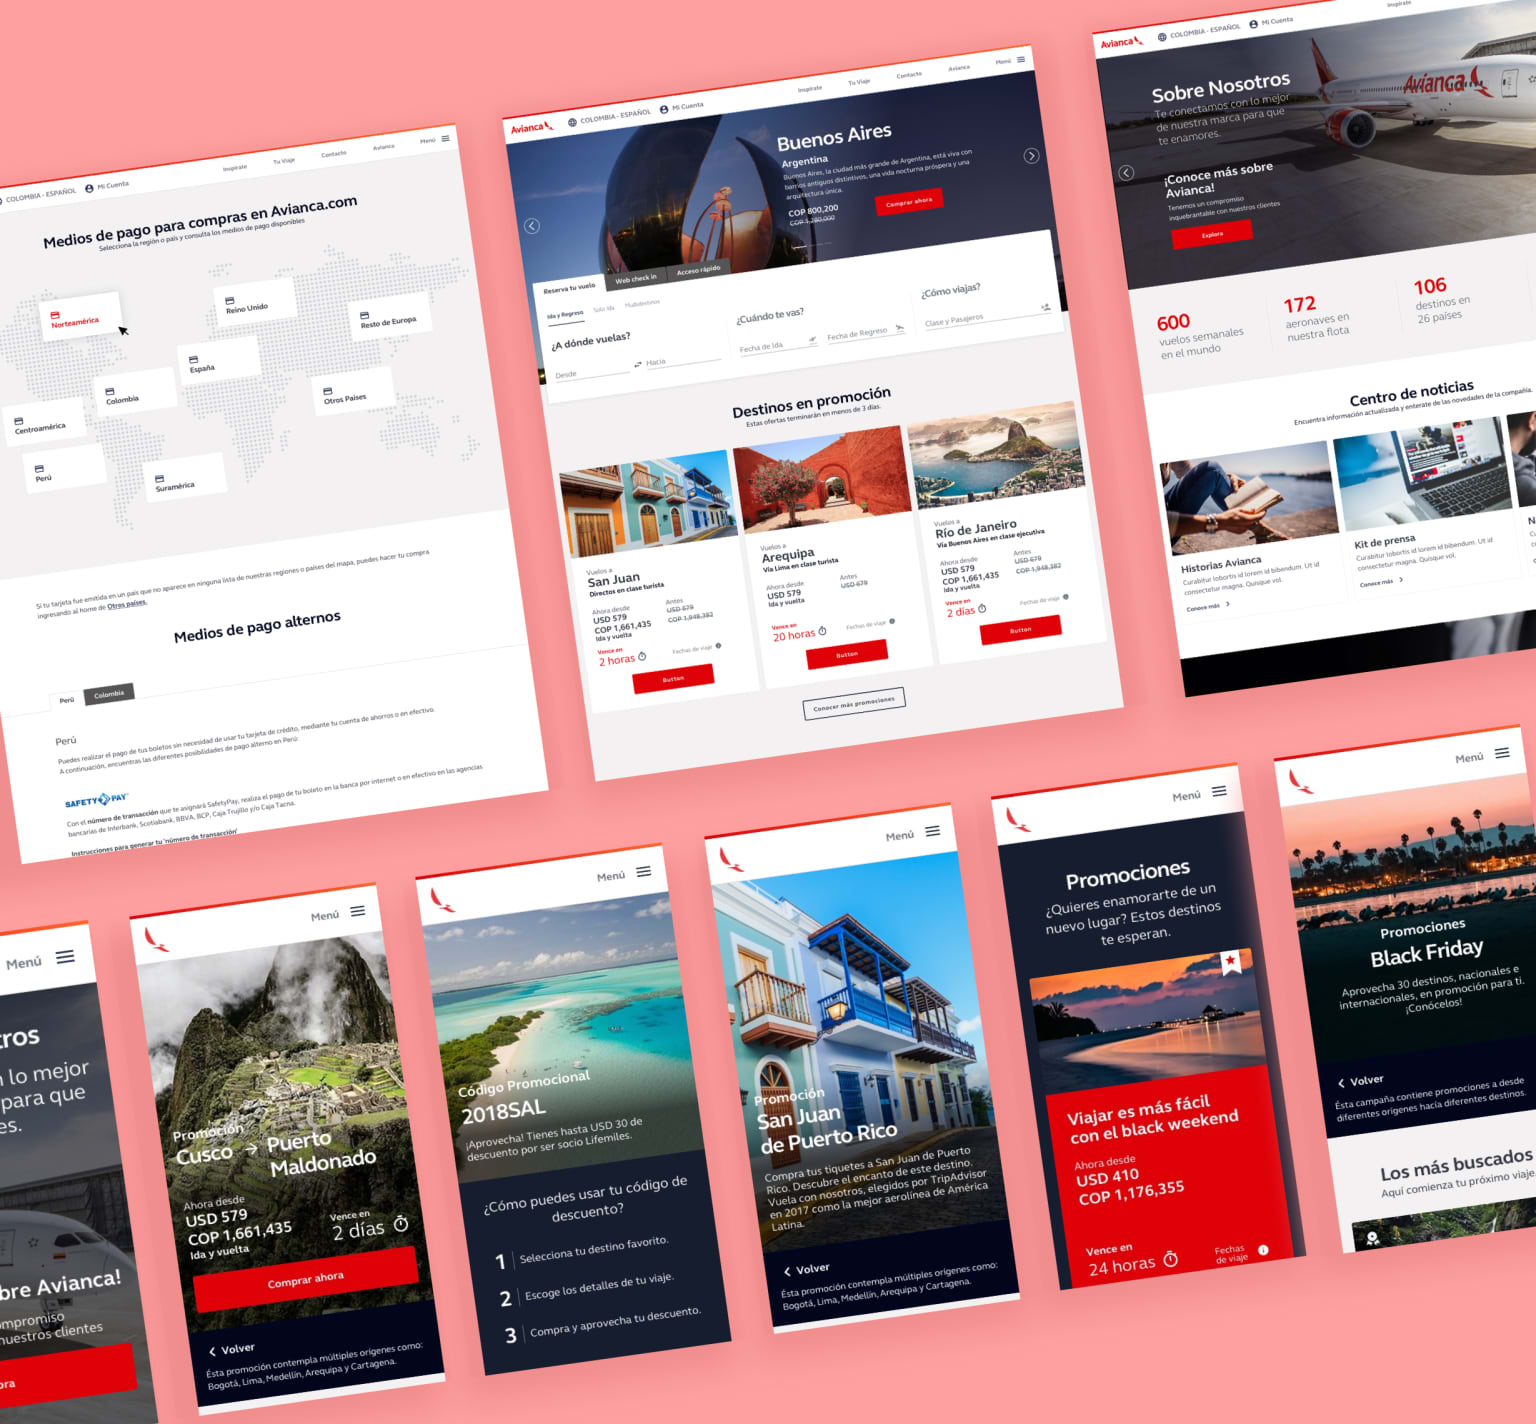 [Digital Product] The new digital experience for one of the biggest airlines.